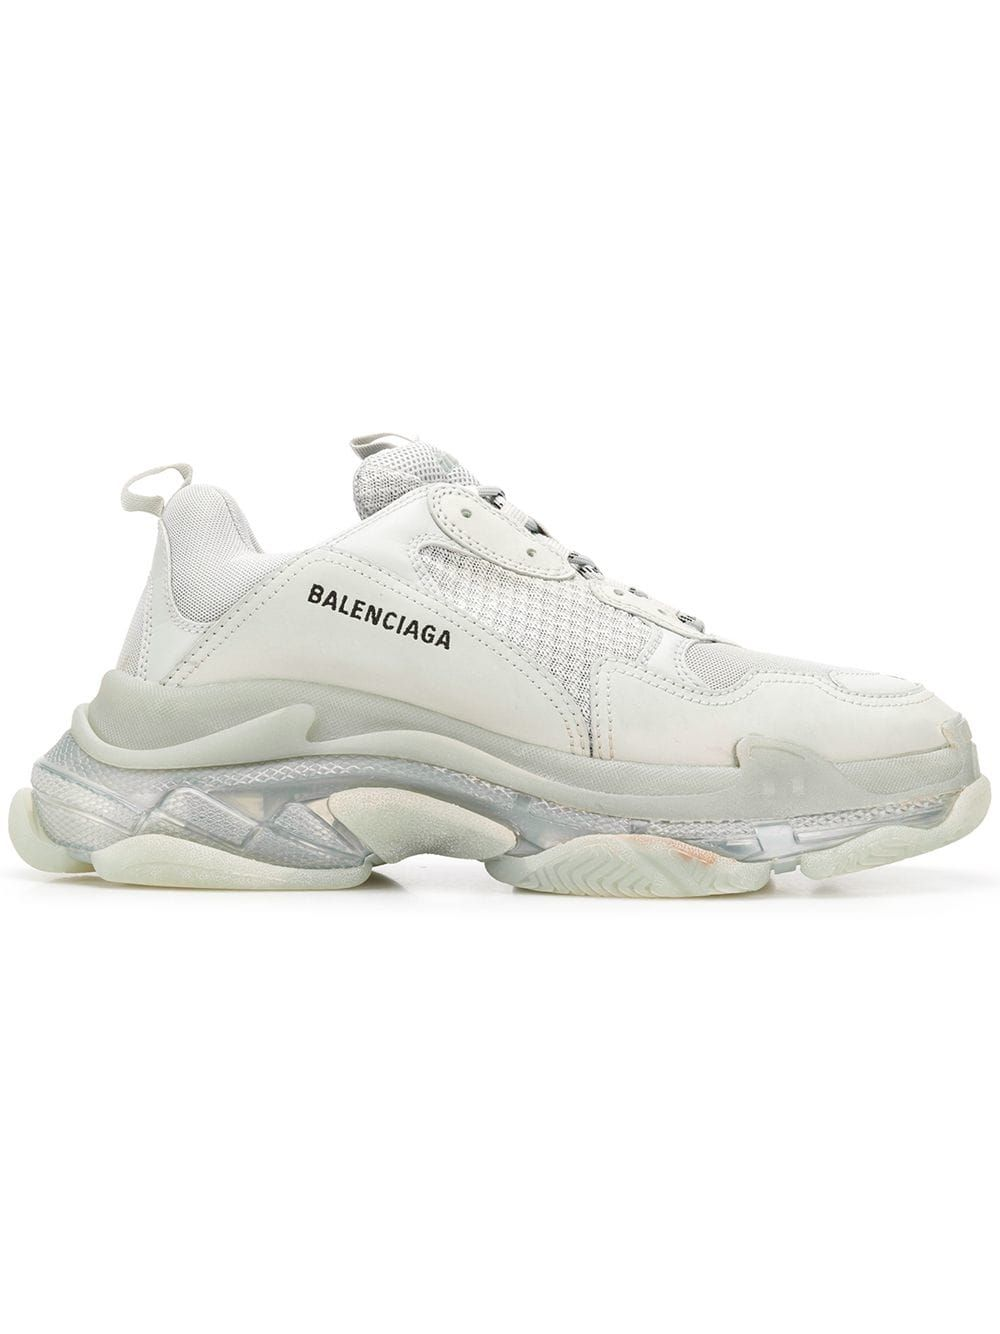 4d89f9e02ea2f BALENCIAGA BALENCIAGA TRIPLE S CLEAR SOLE - GREY.  balenciaga  shoes ...